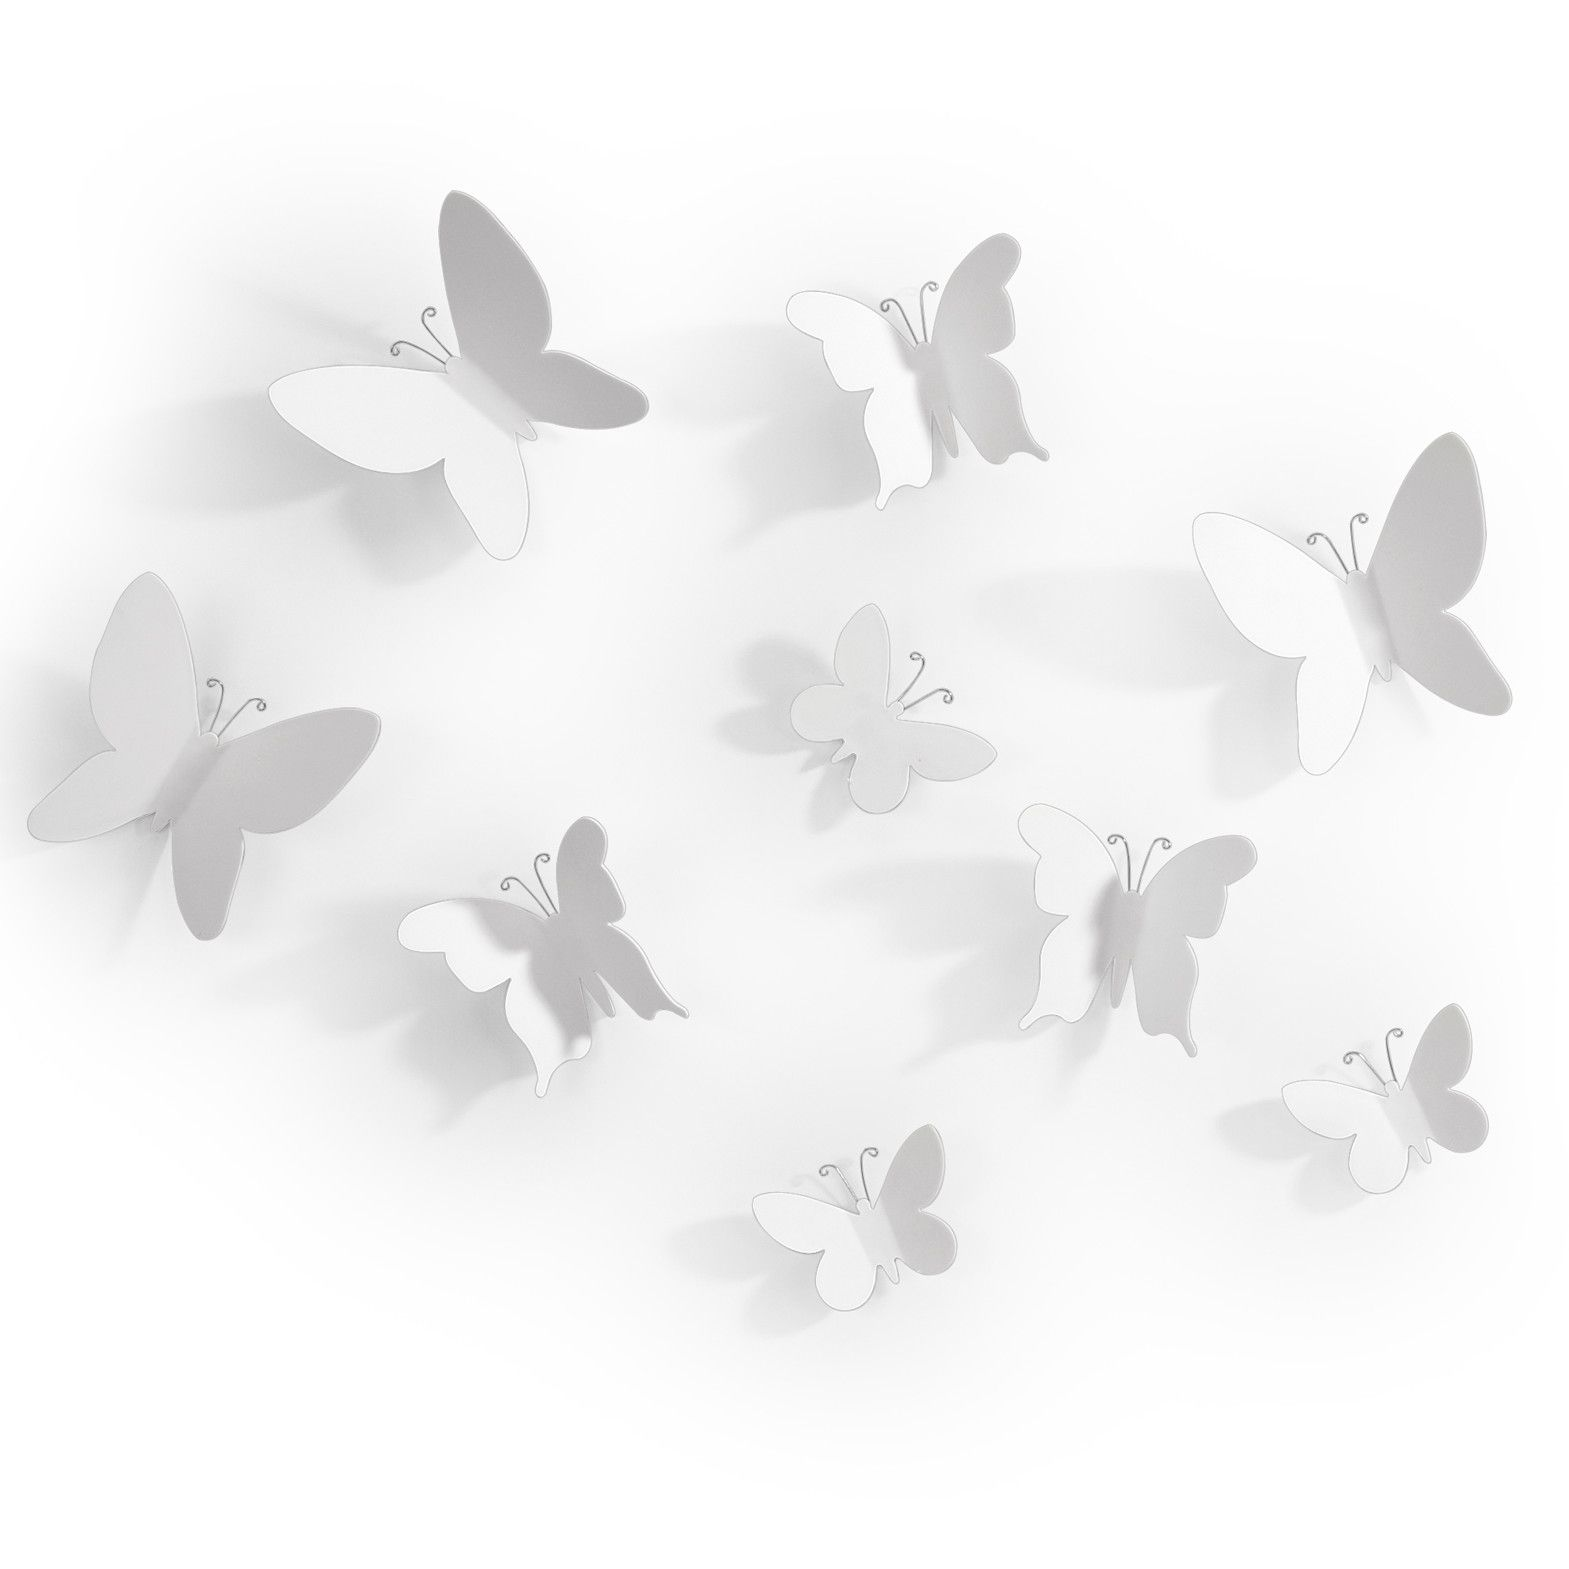 Mariposa 9 Piece Wall Decor Set Butterfly Wall Decor